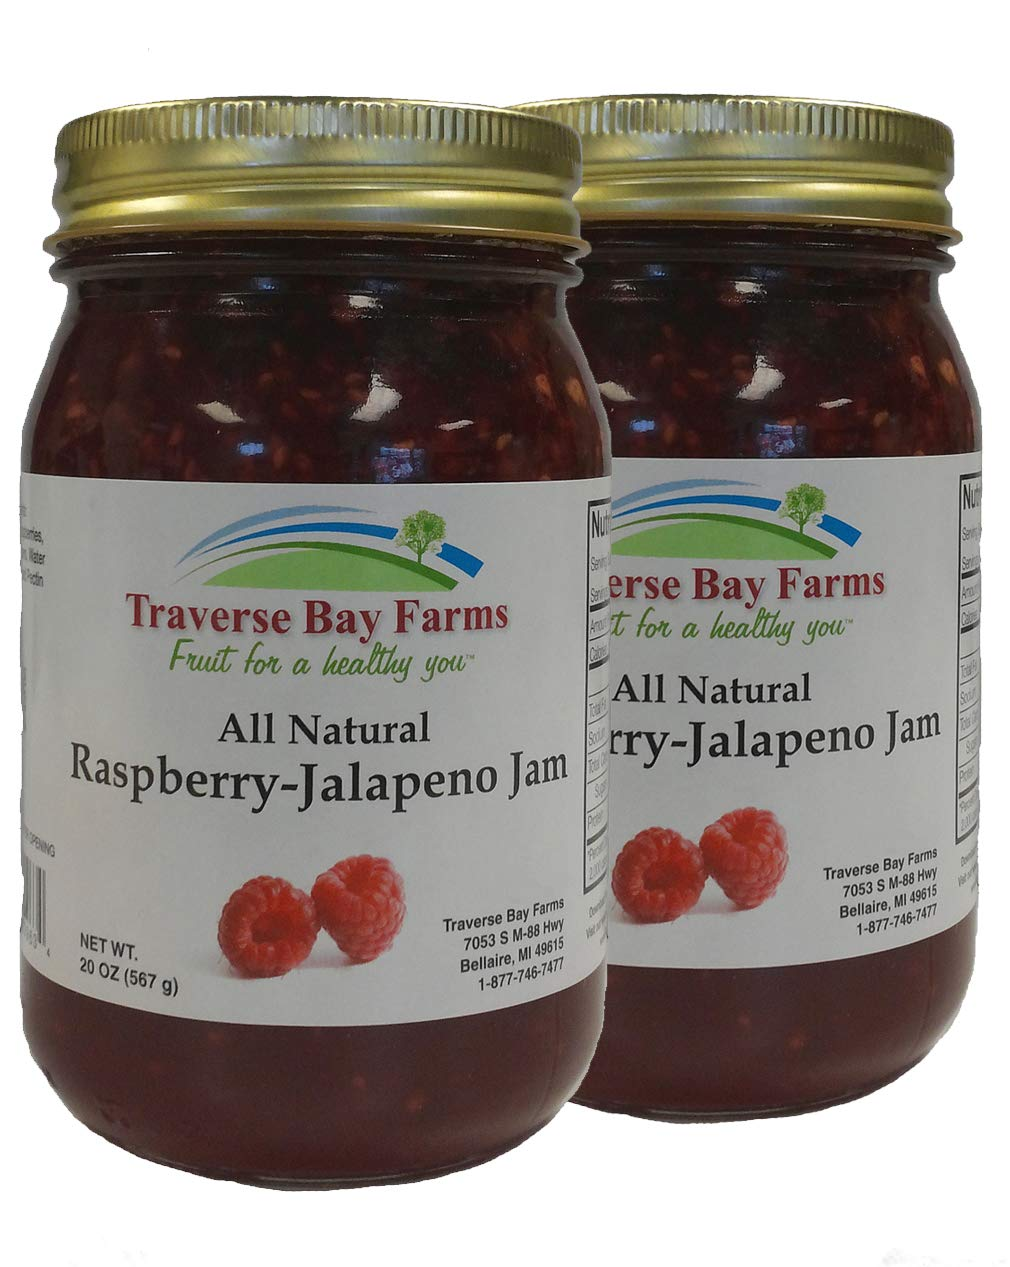 Traverse Bay Farms All Natural Raspberry Jalapeno Jam - 2 pack - (Pepper Jelly)